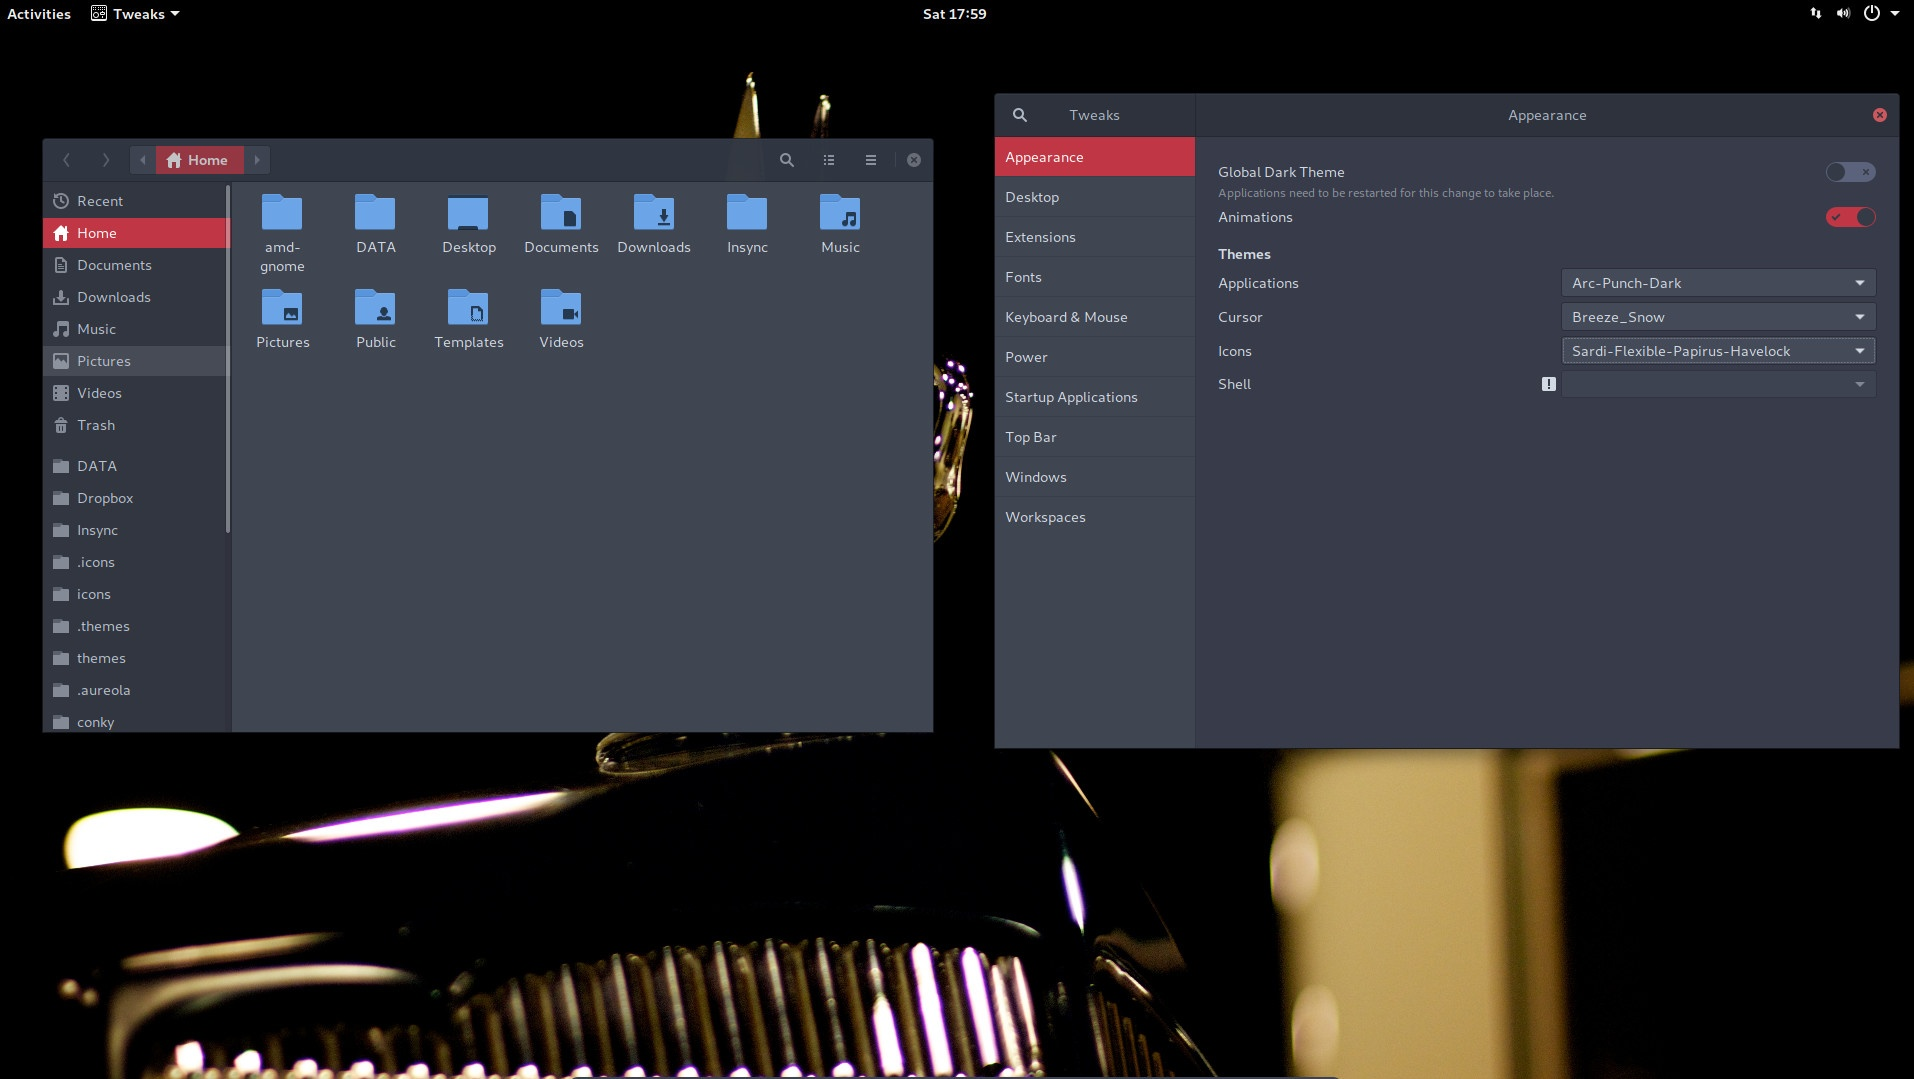 2 How to change icons, themes and cursors in ArcoLinuxD Gnome